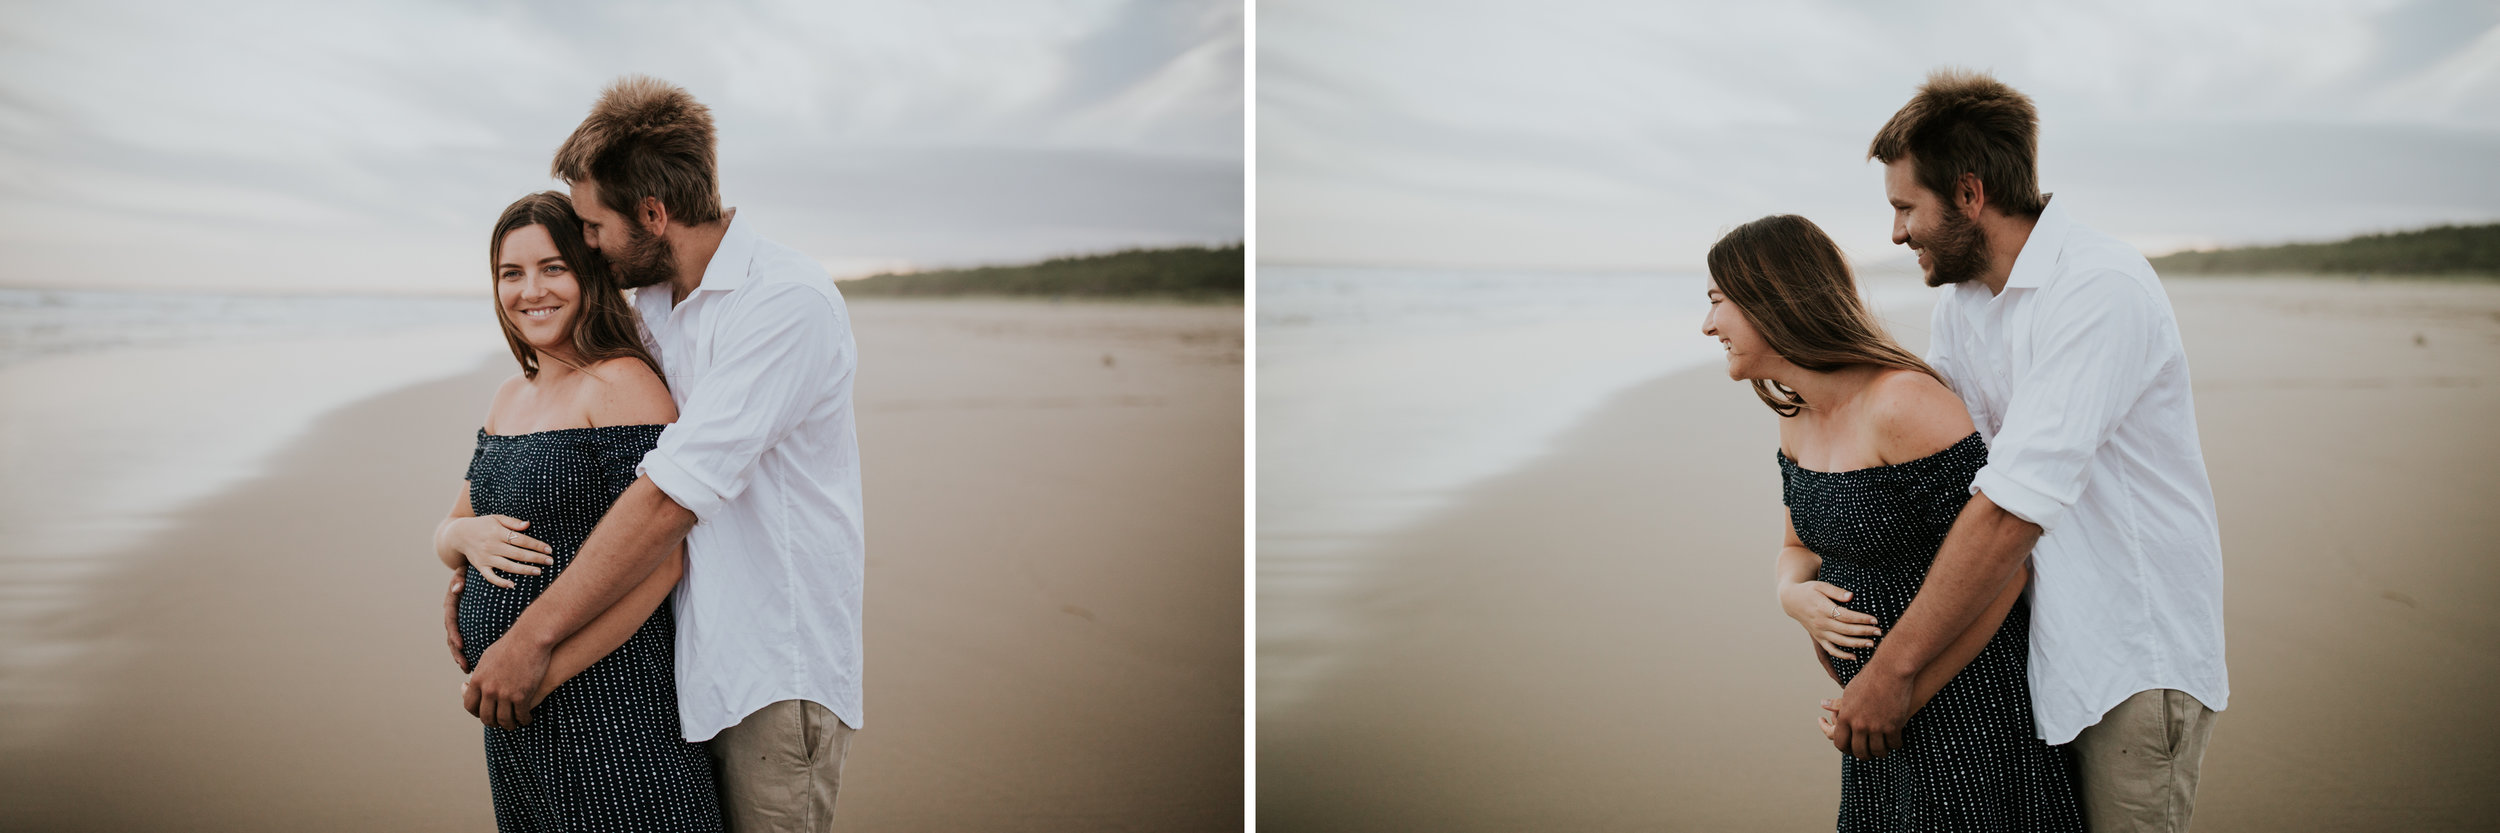 AMY+ANDREW+SHOALHAVEN+HEADS+BEACH+MATERNITY+SESSION+RELAXED-5.jpg